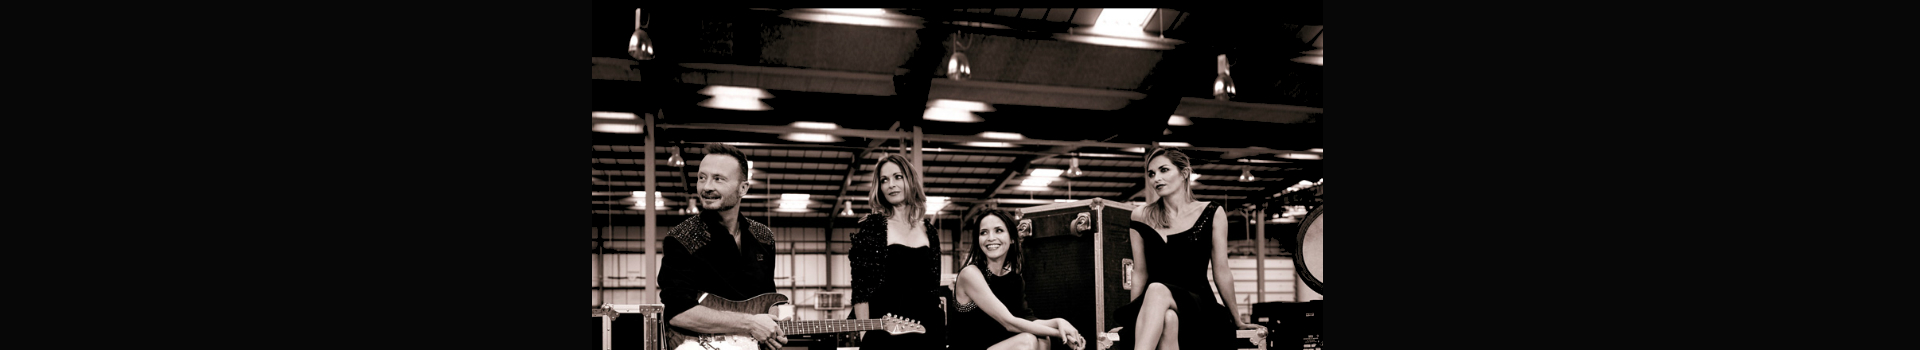 The Corrs Live at the O2 tickets London